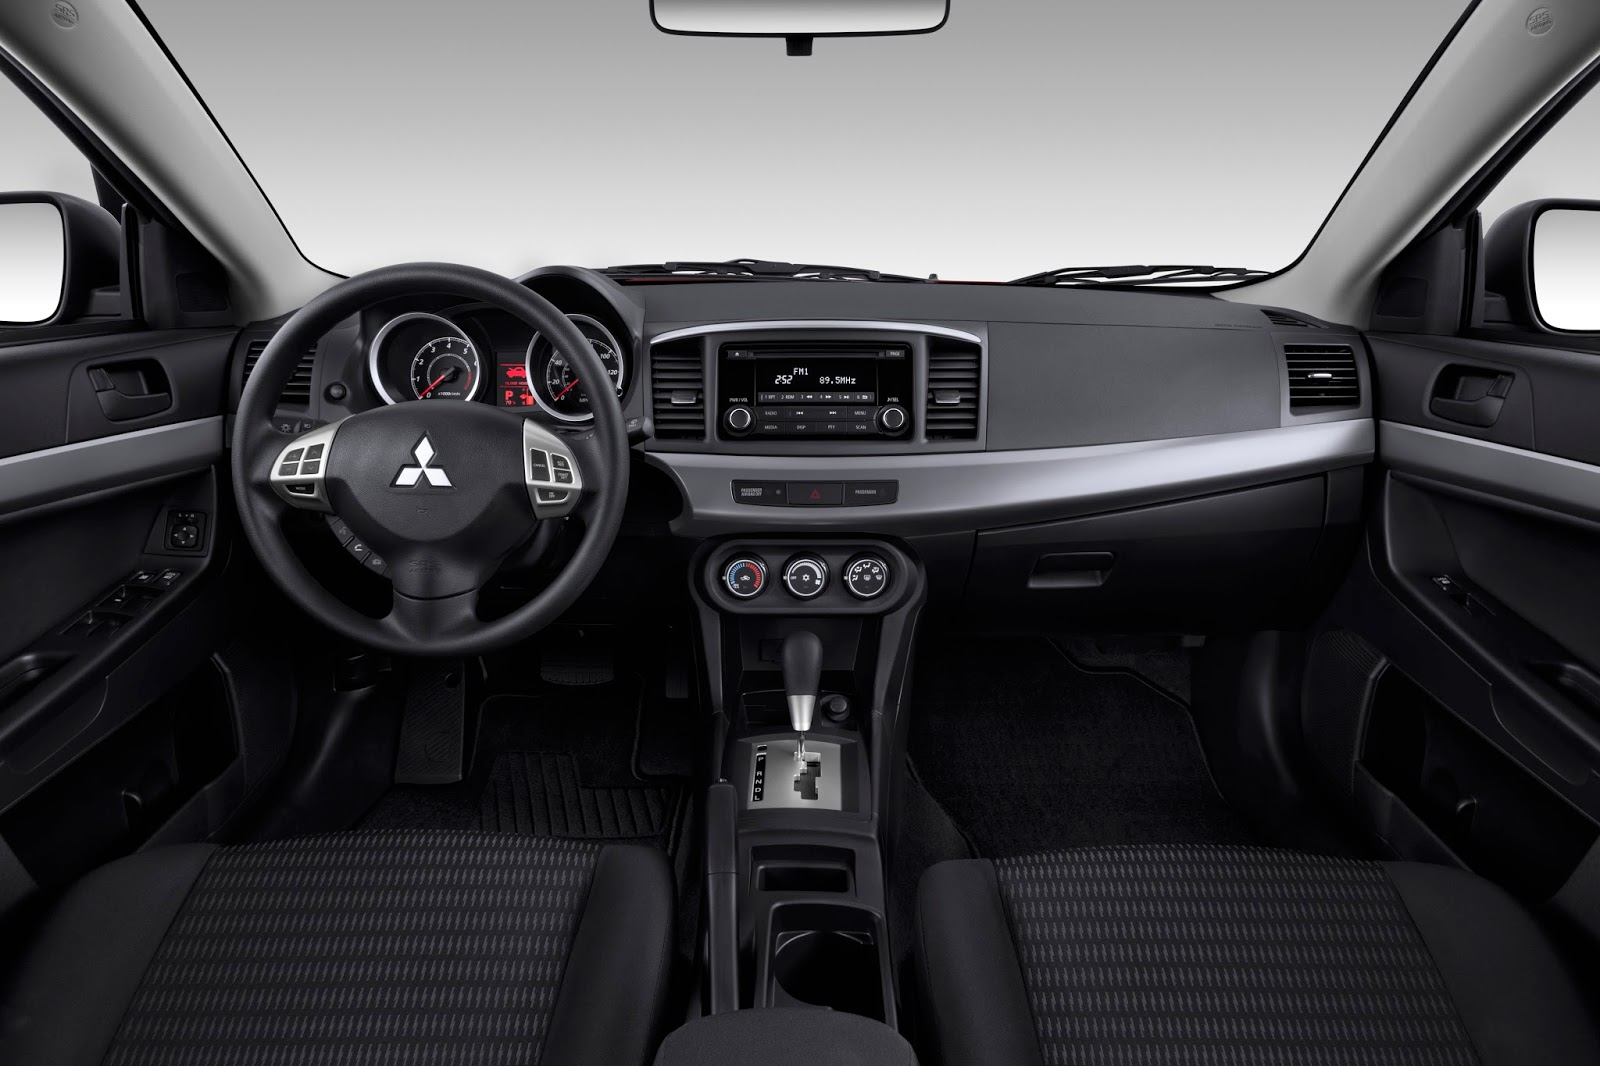 Interior view of 2014 Mitsubishi Lancer GT